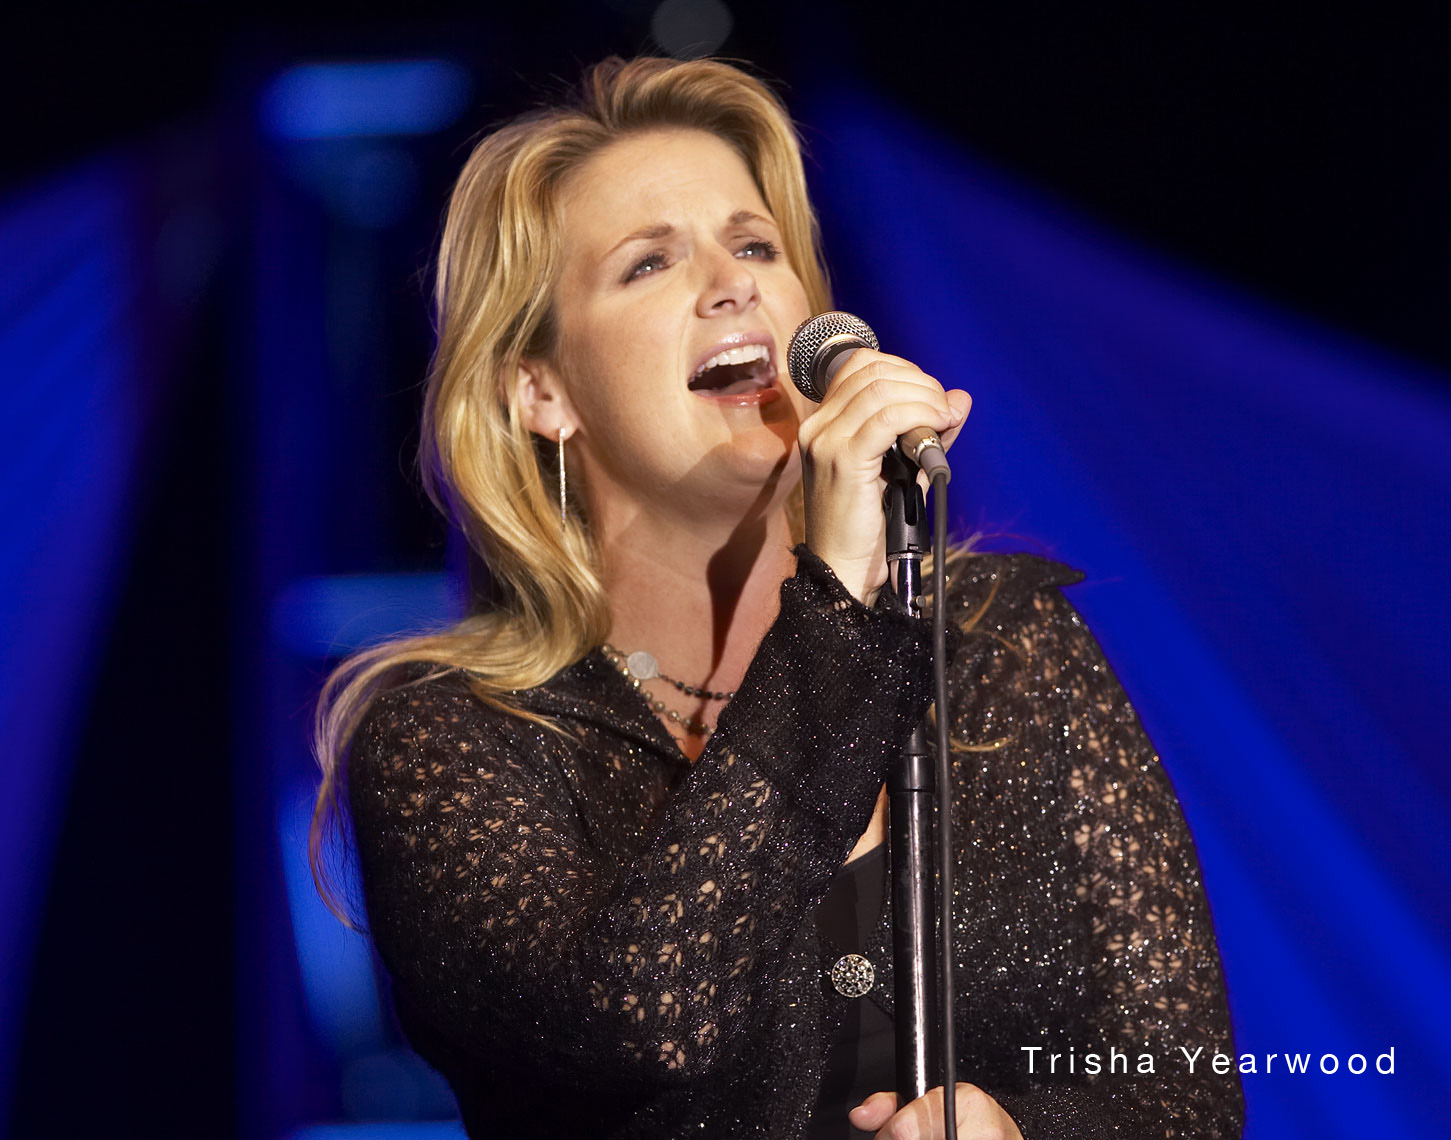 Trisha Yearwood/Mystic Lake Casino/concert photo